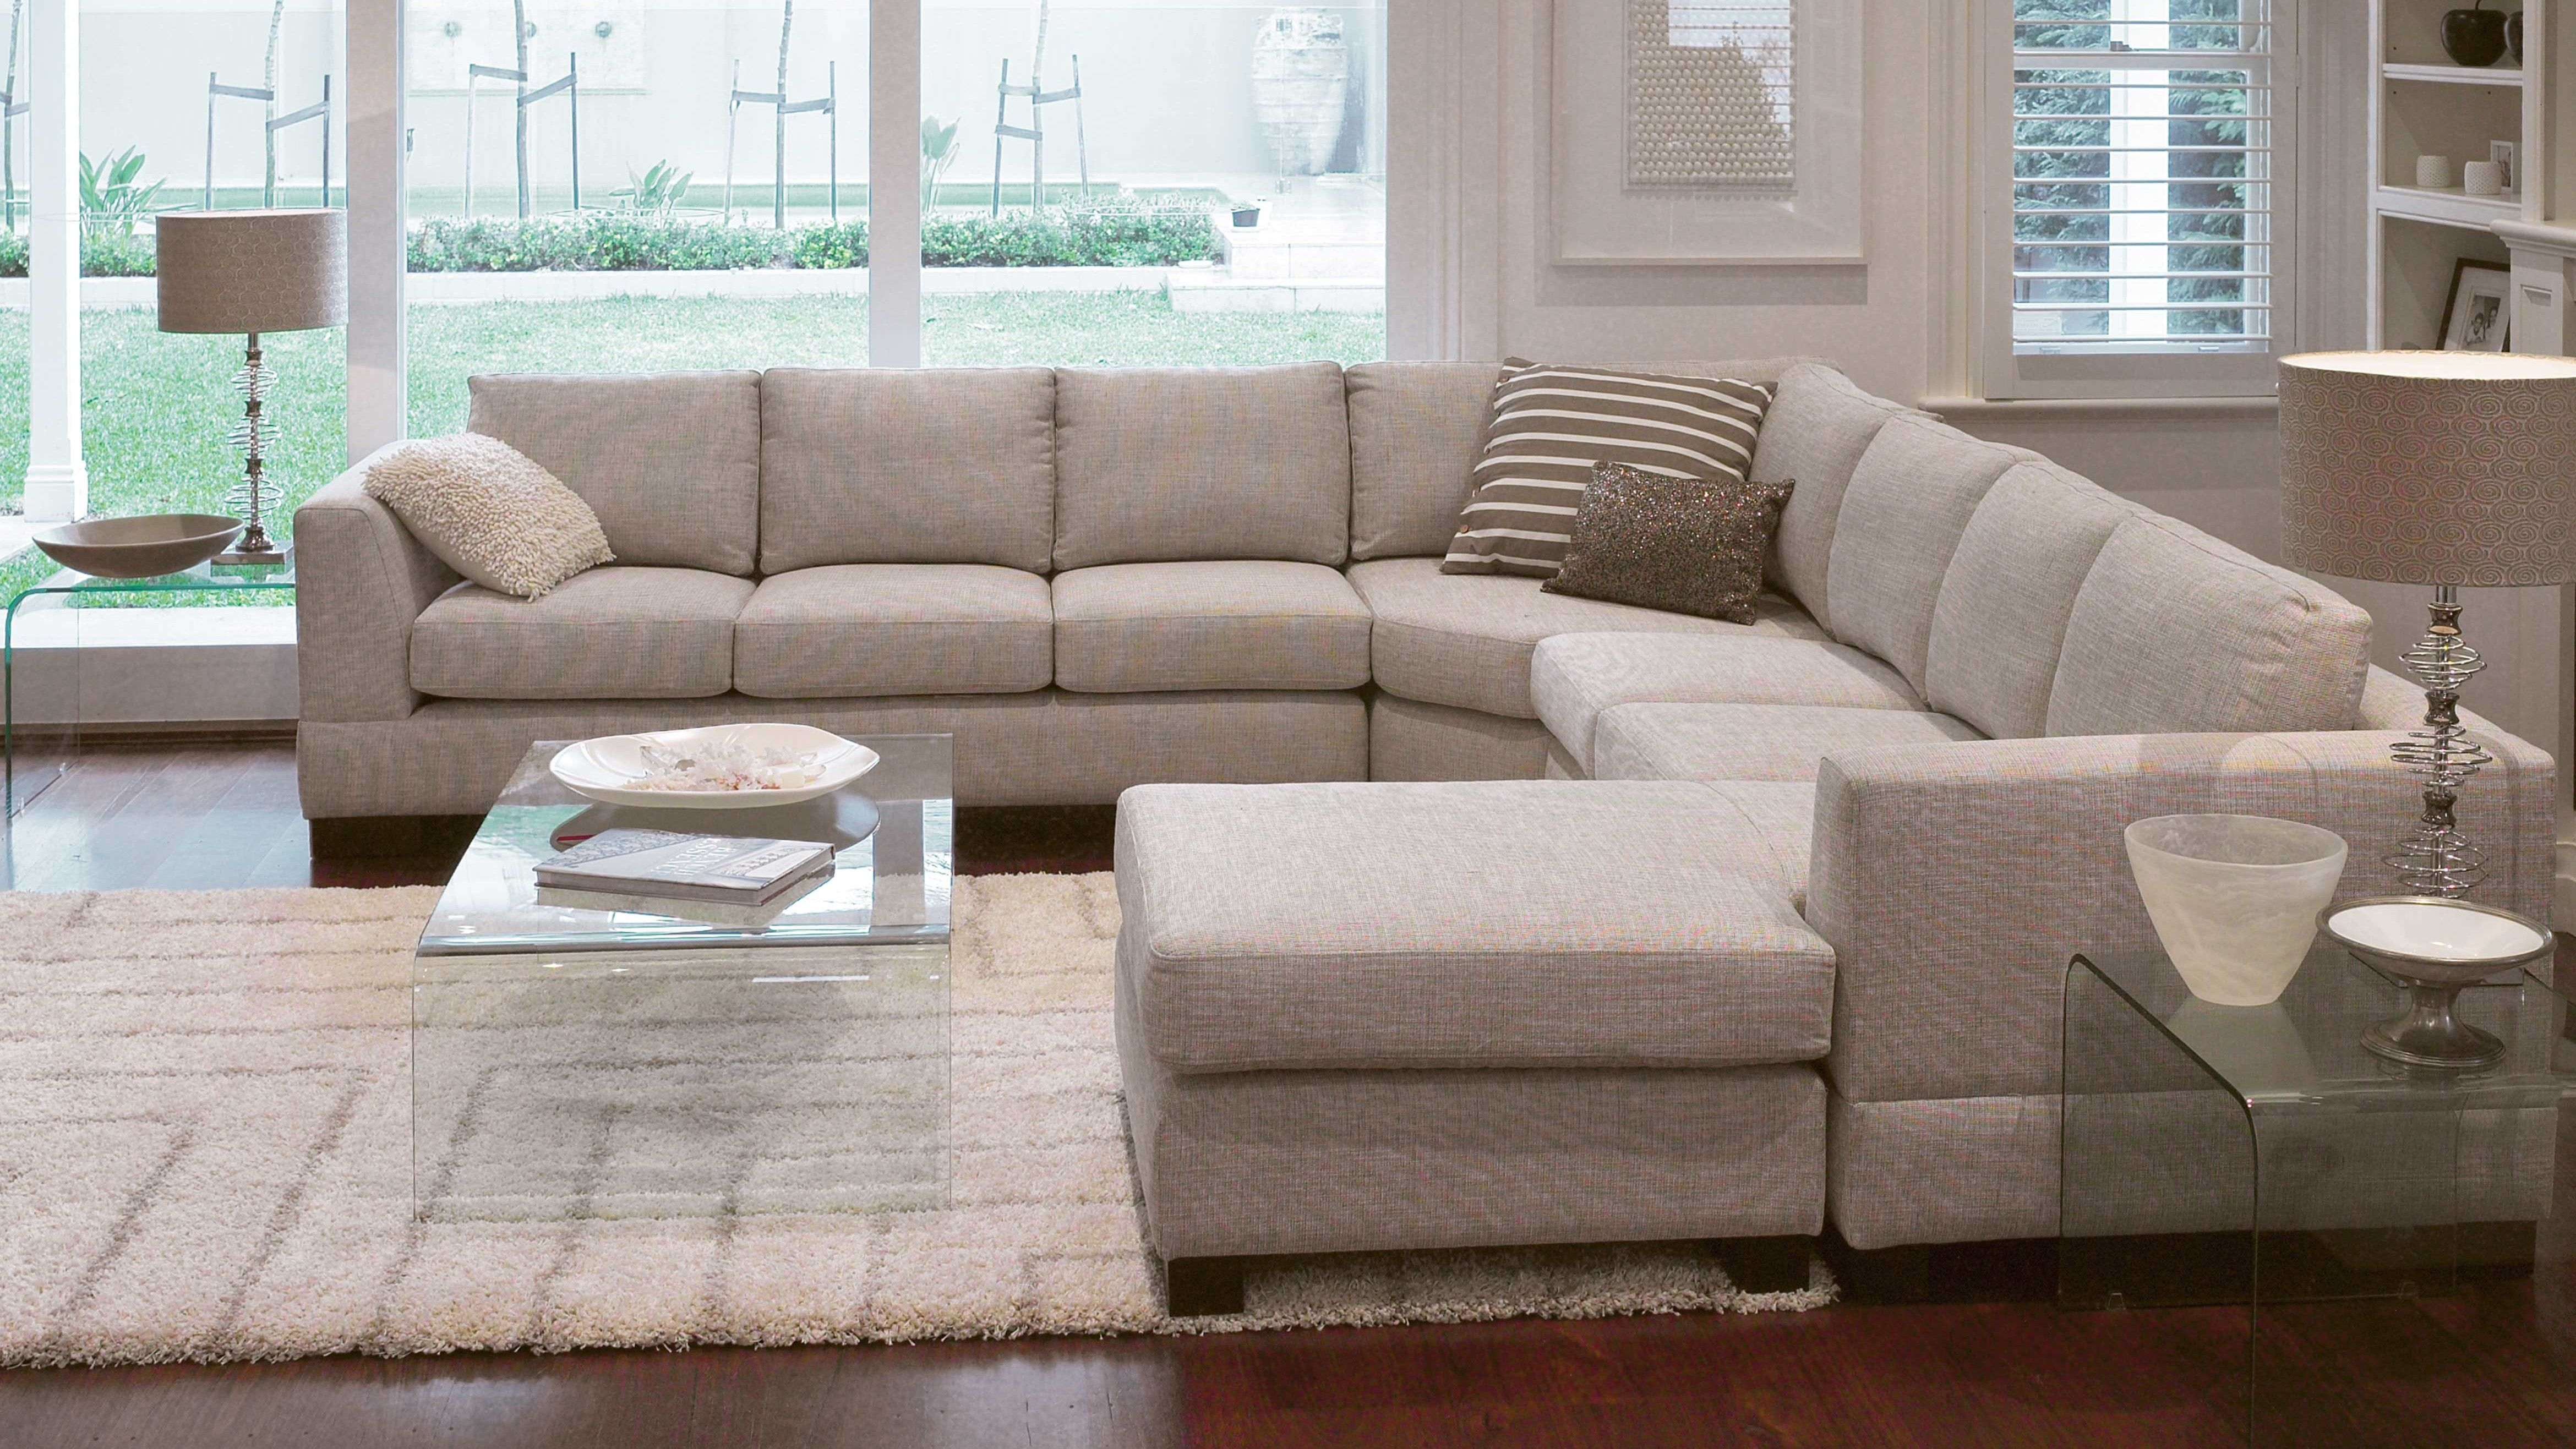 Cooper Sofa Harvey Norman Express Locations Ohio Just Picked Out My New Lounge In A Darker Colour Love It Cant Wait To Move Into The Beach House 3 Weeks Modular Suite